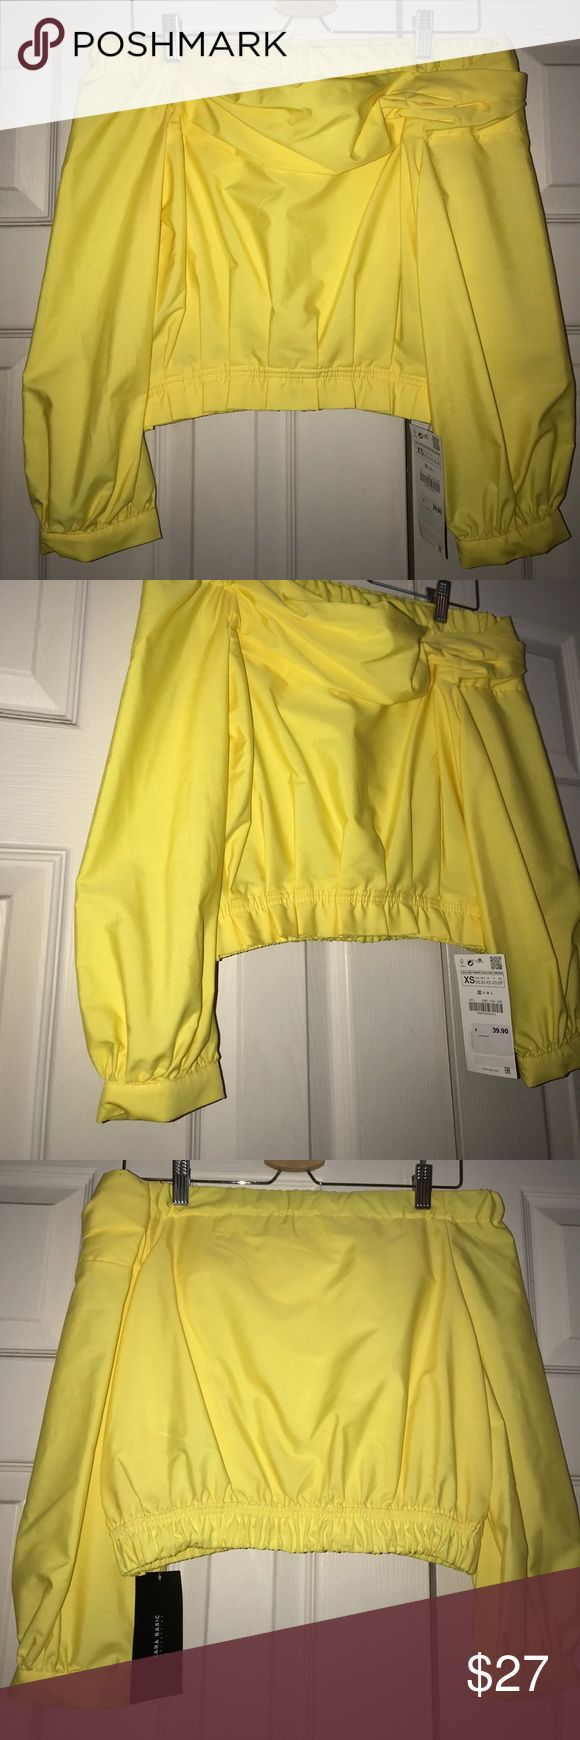 Yellow fitted Bardot top This yellow Bardot top is perfect for bringing attention to an otherwise all black outfit for fall. Zara Tops Blouses